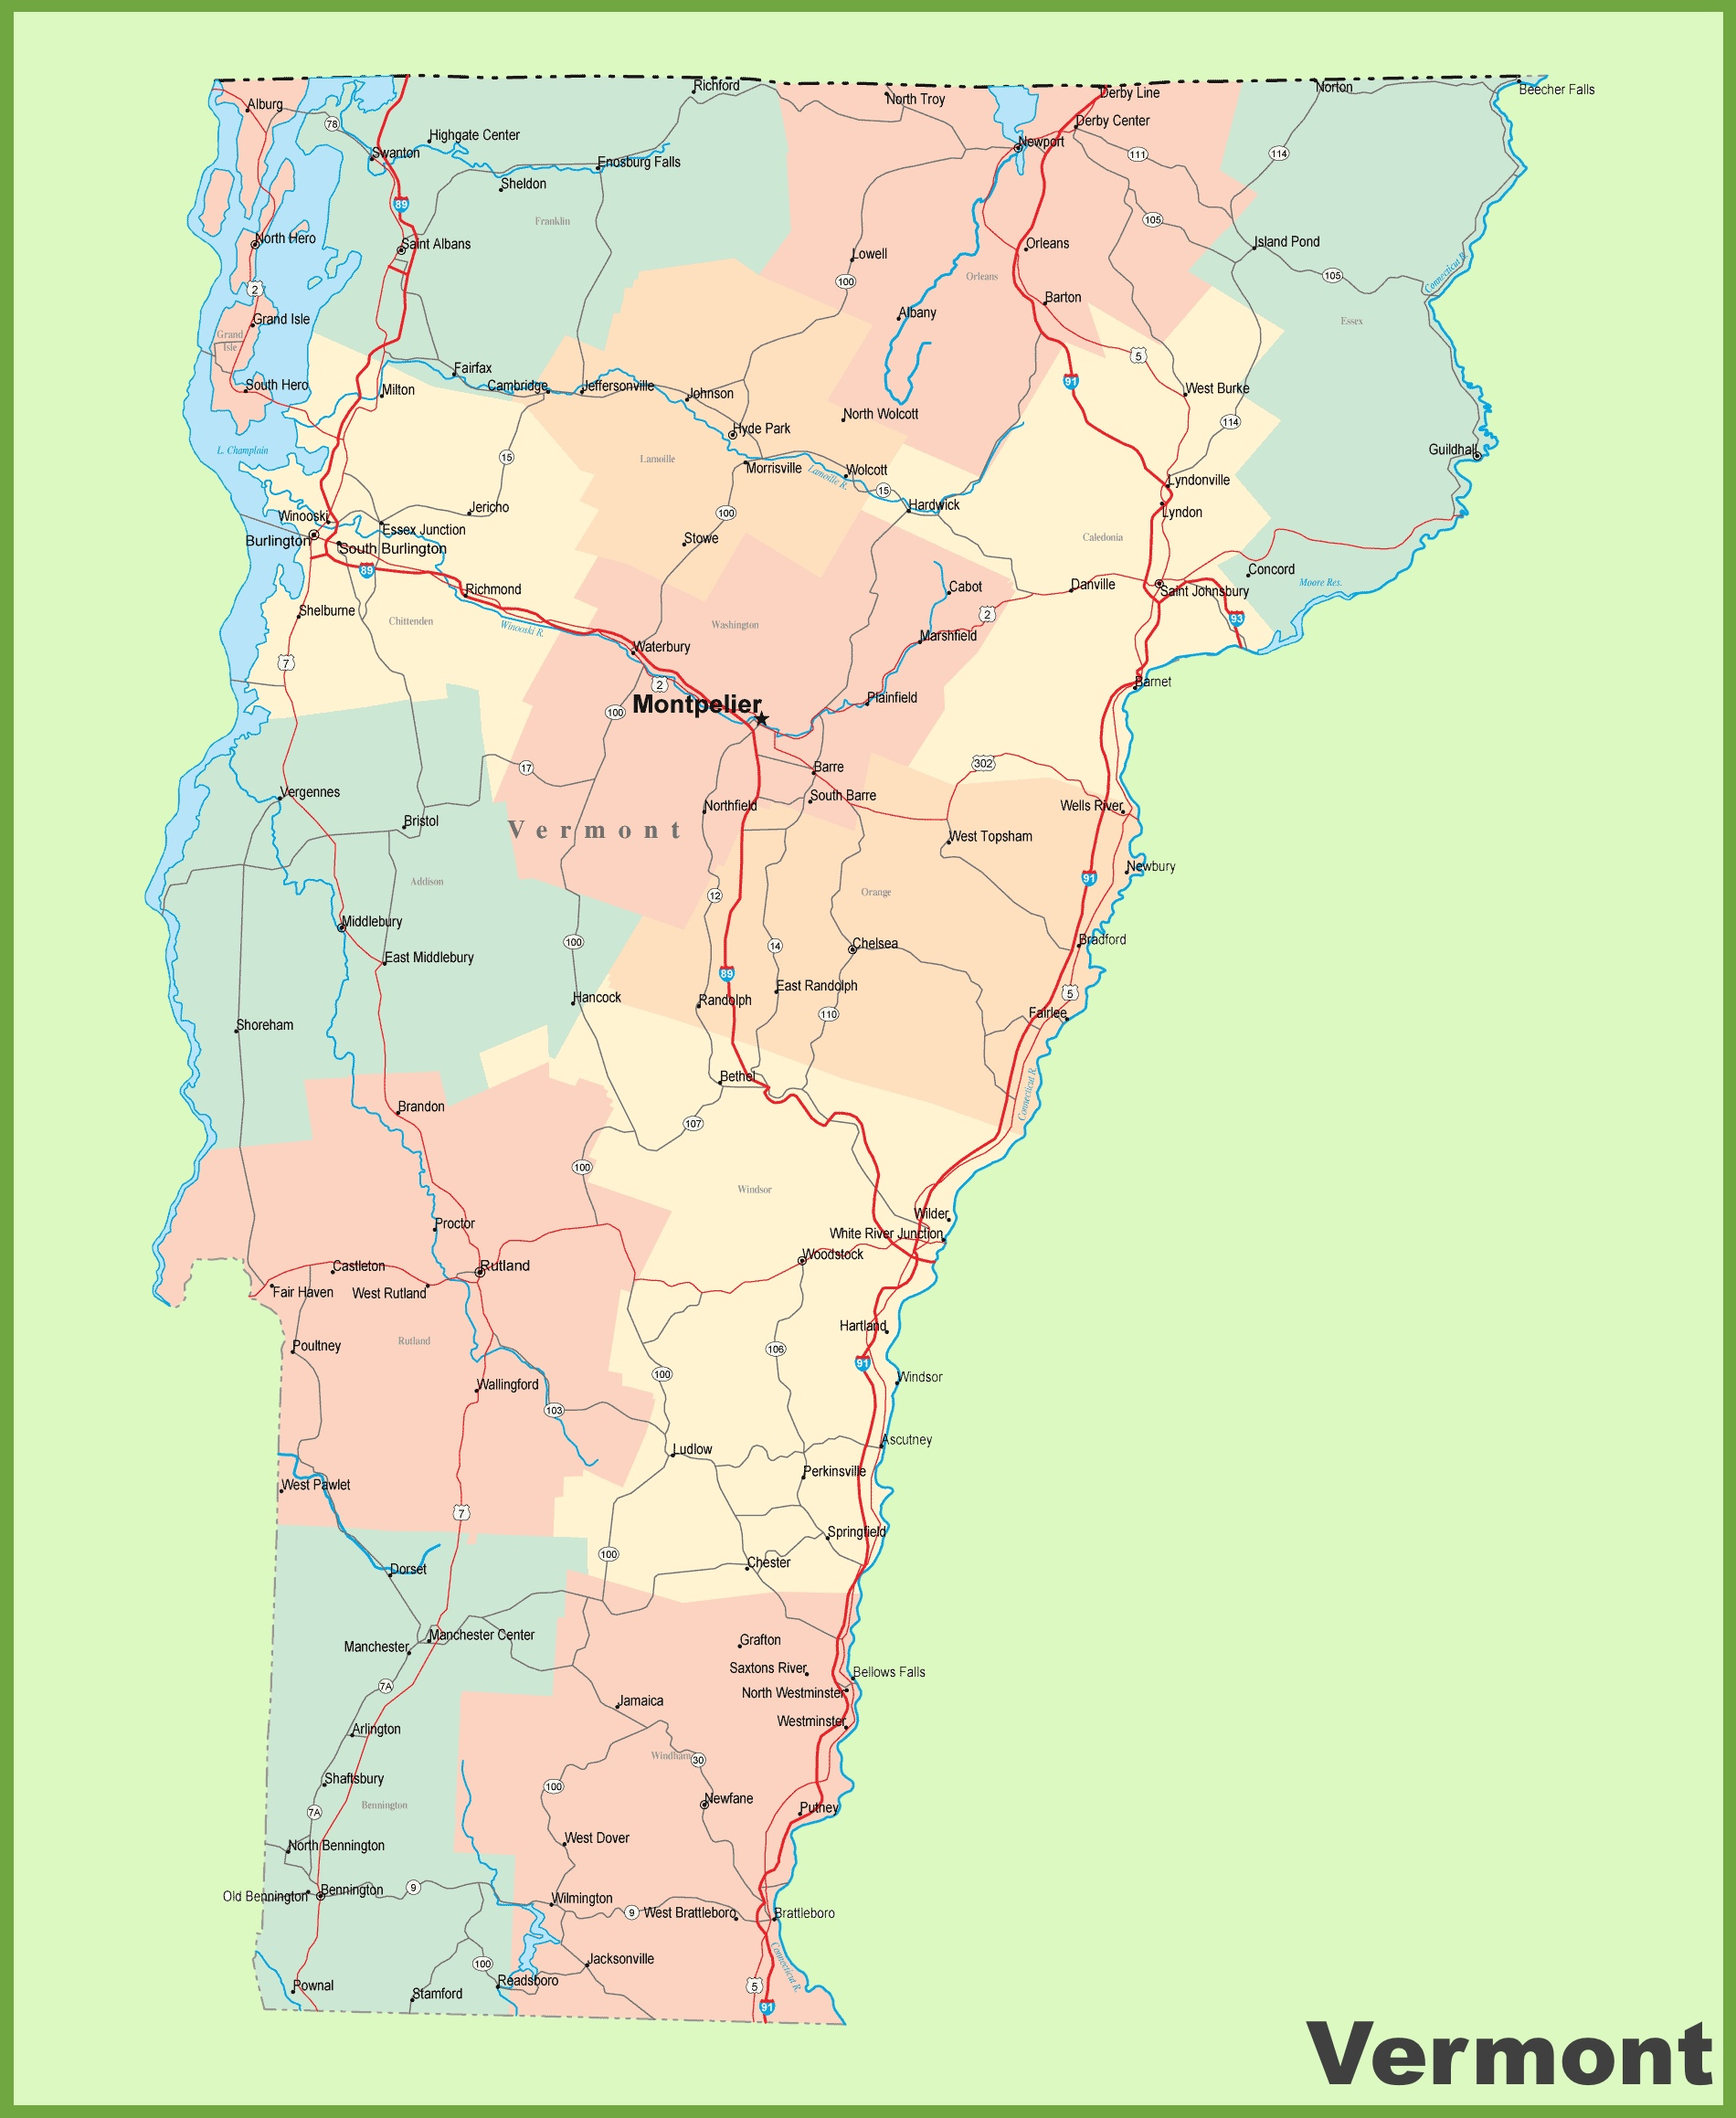 Road Map Of Vermont With Cities - Vermont in usa map